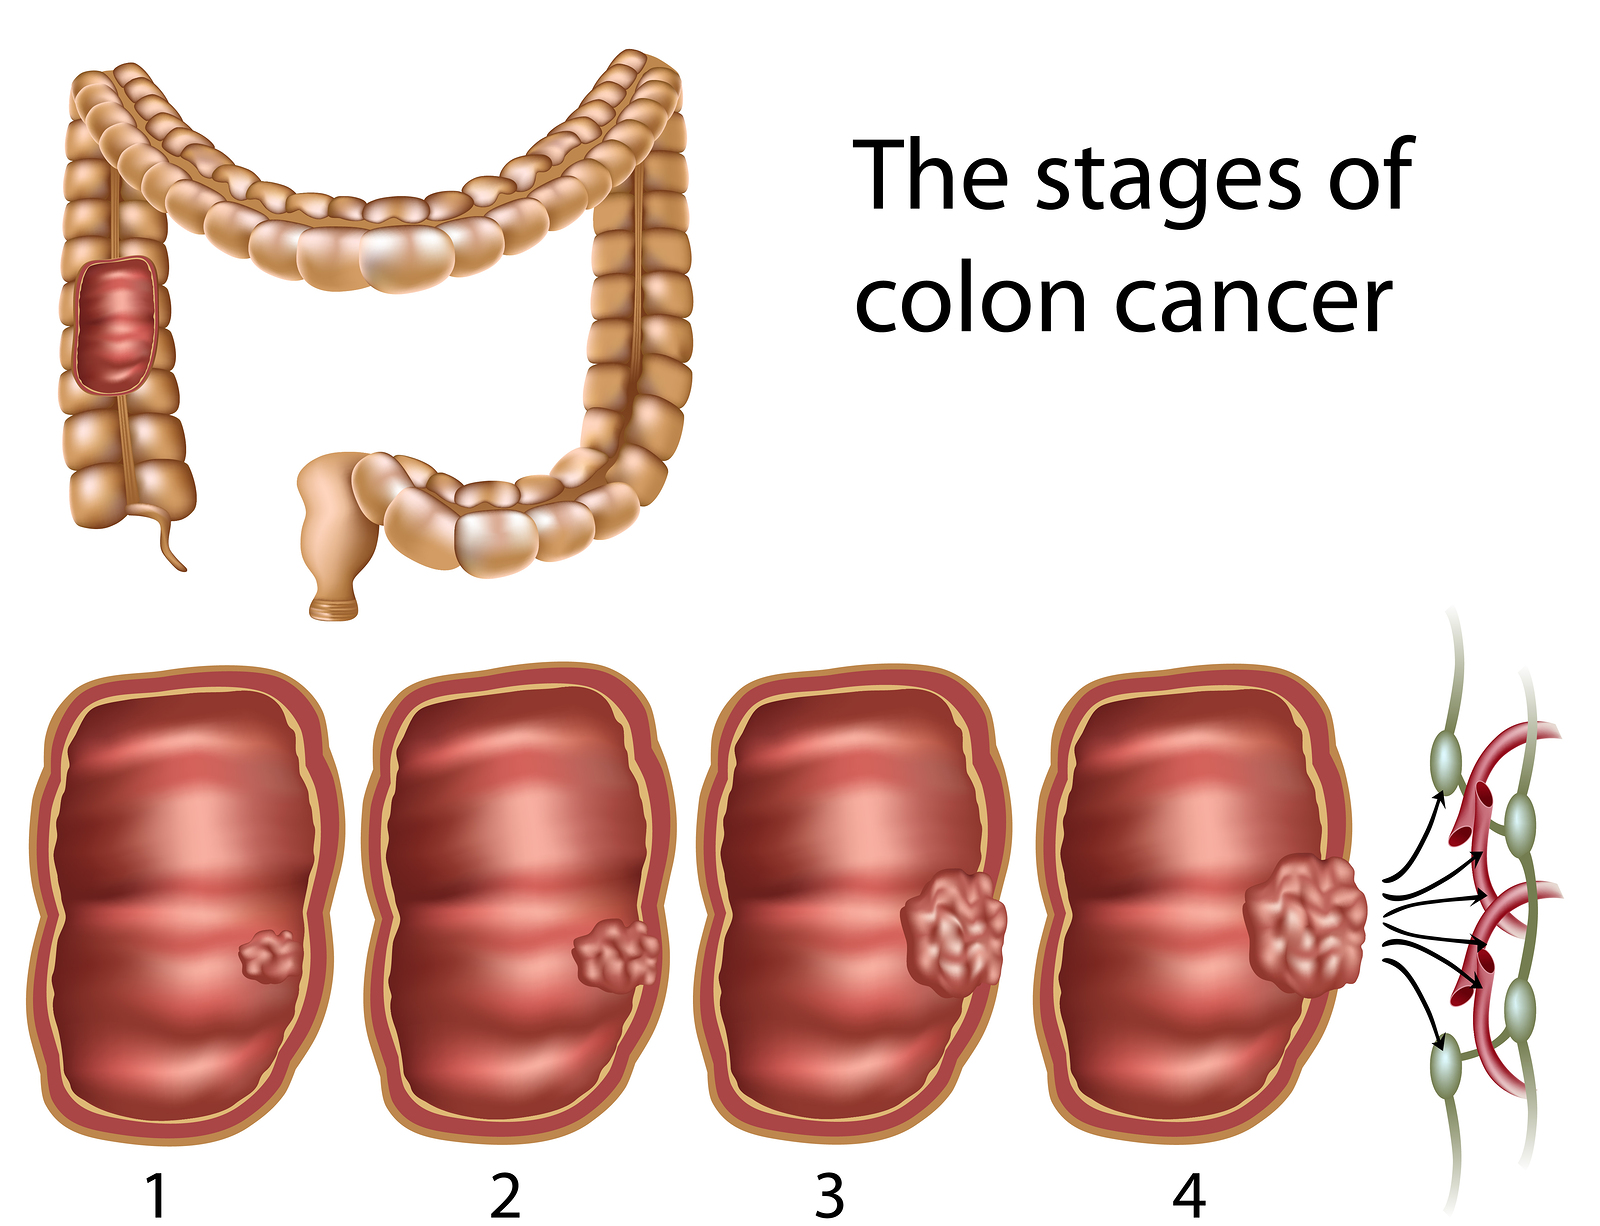 ... Leading Cause of Cancer Deaths Can Be Prevented- Colorectal Cancer